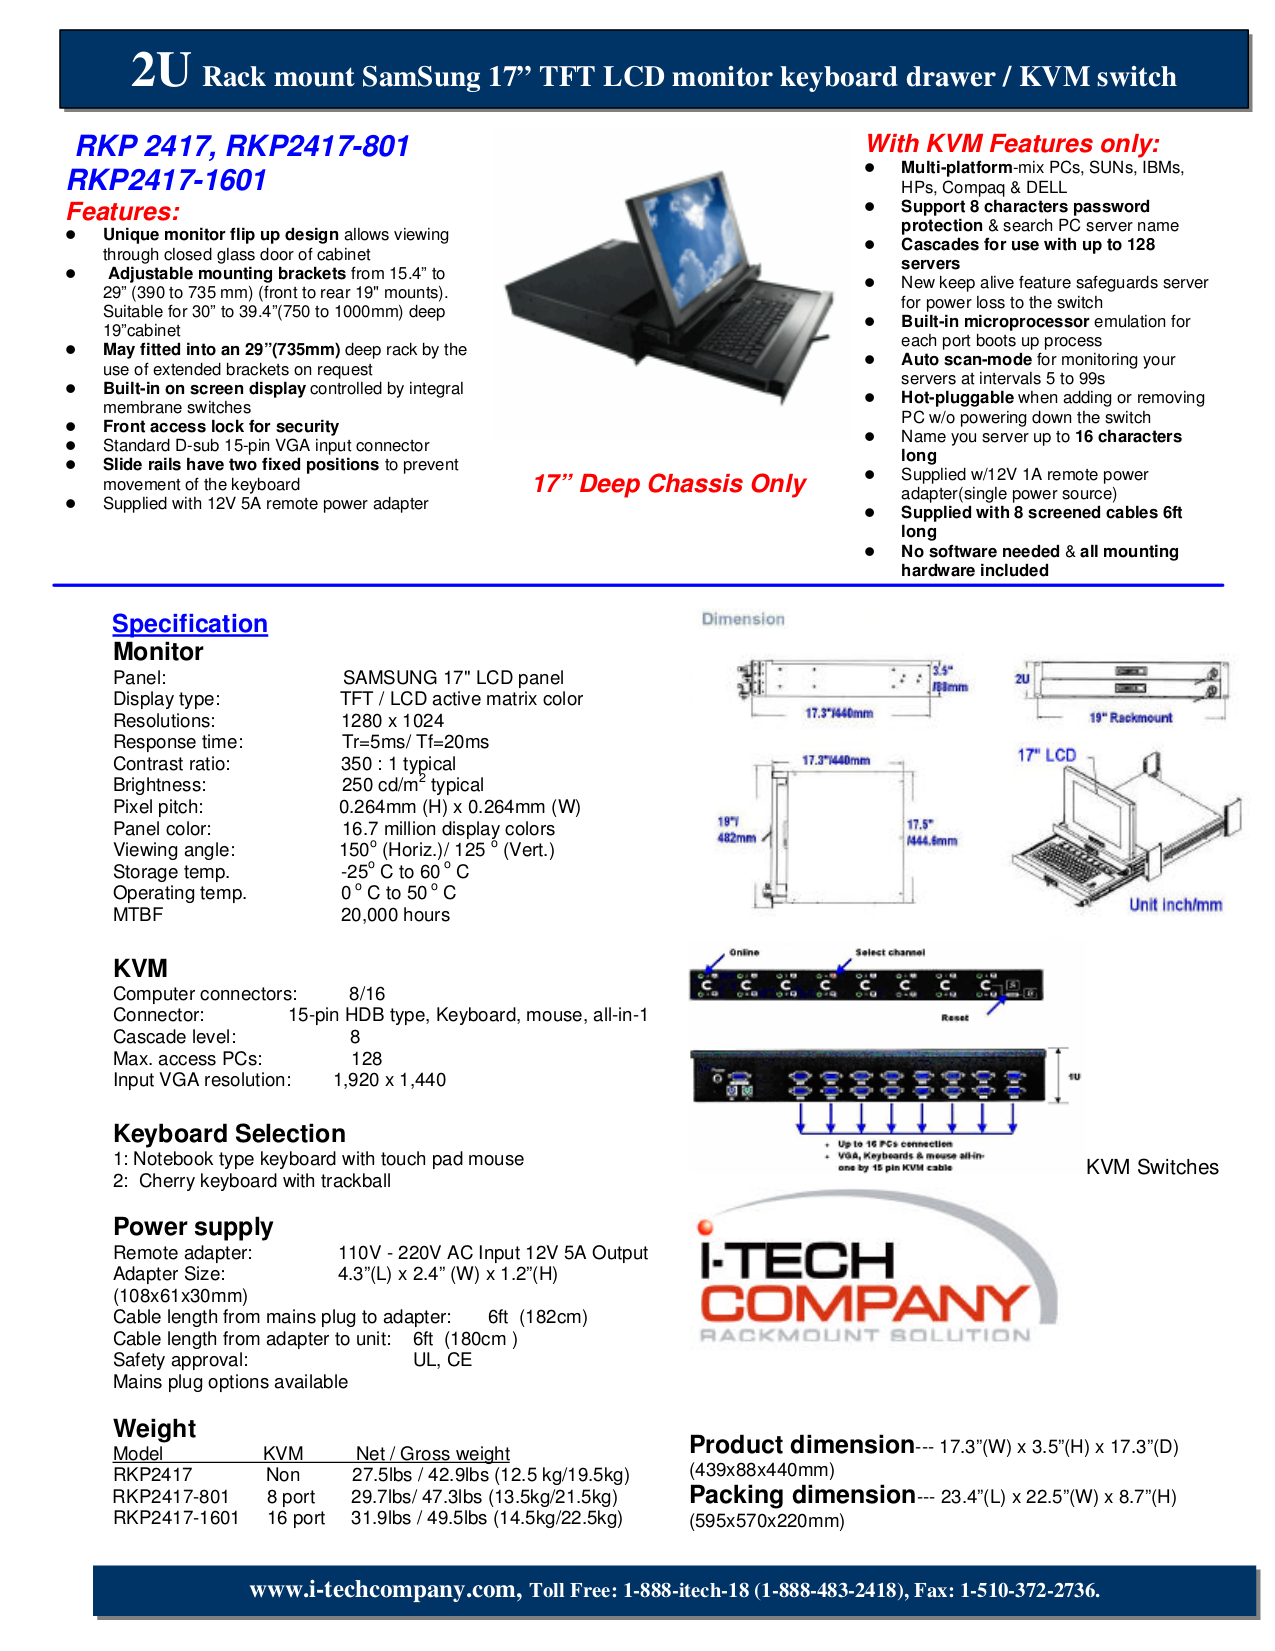 pdf for I-Tech Other RKP2417- 801 Keyboard Drawers manual